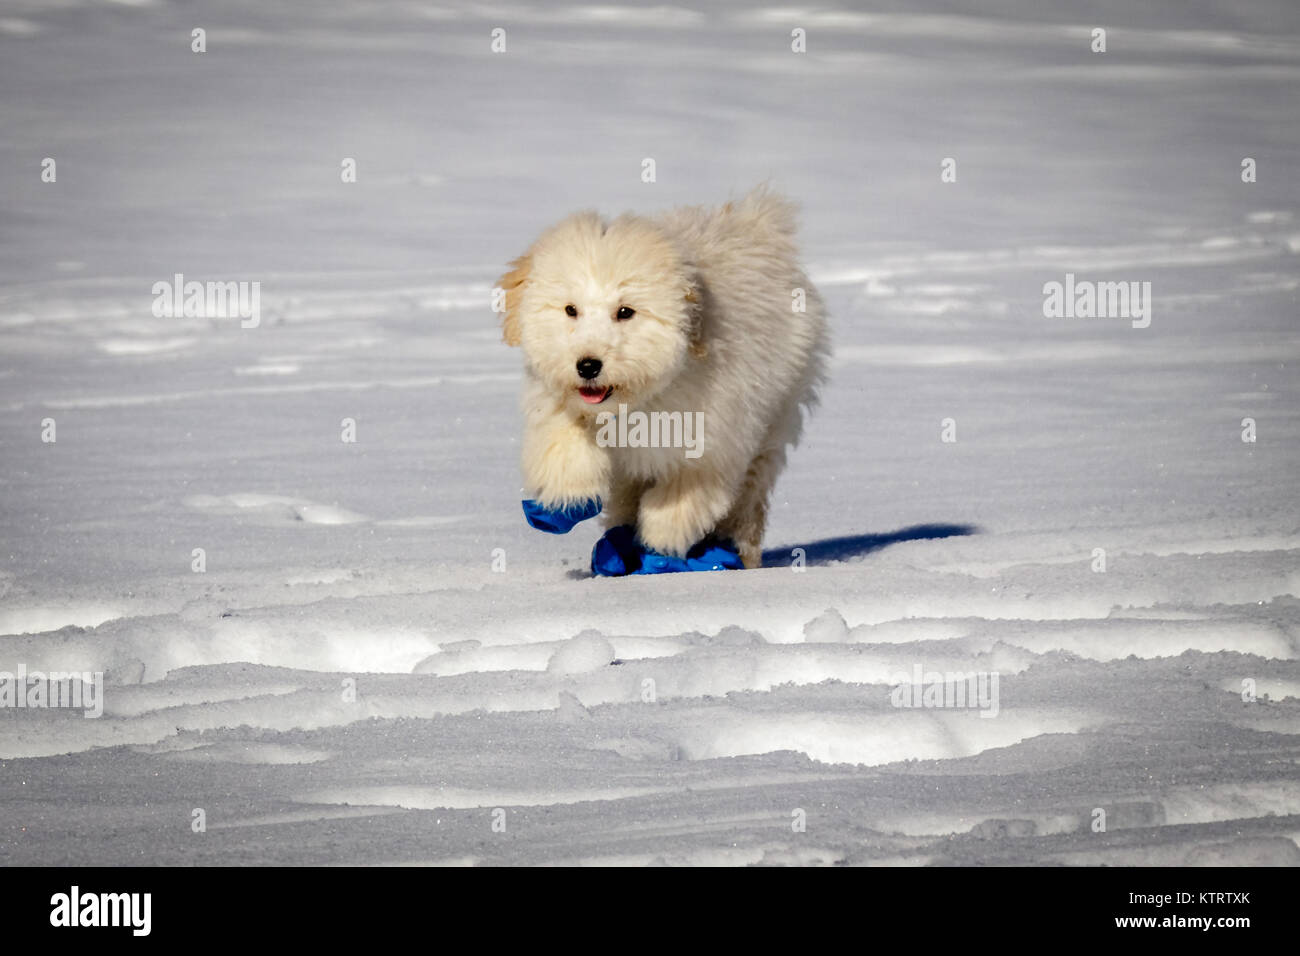 An Extremely Cute Baby Golden Doodle Running Around On Snow Wearing Stock Photo Alamy